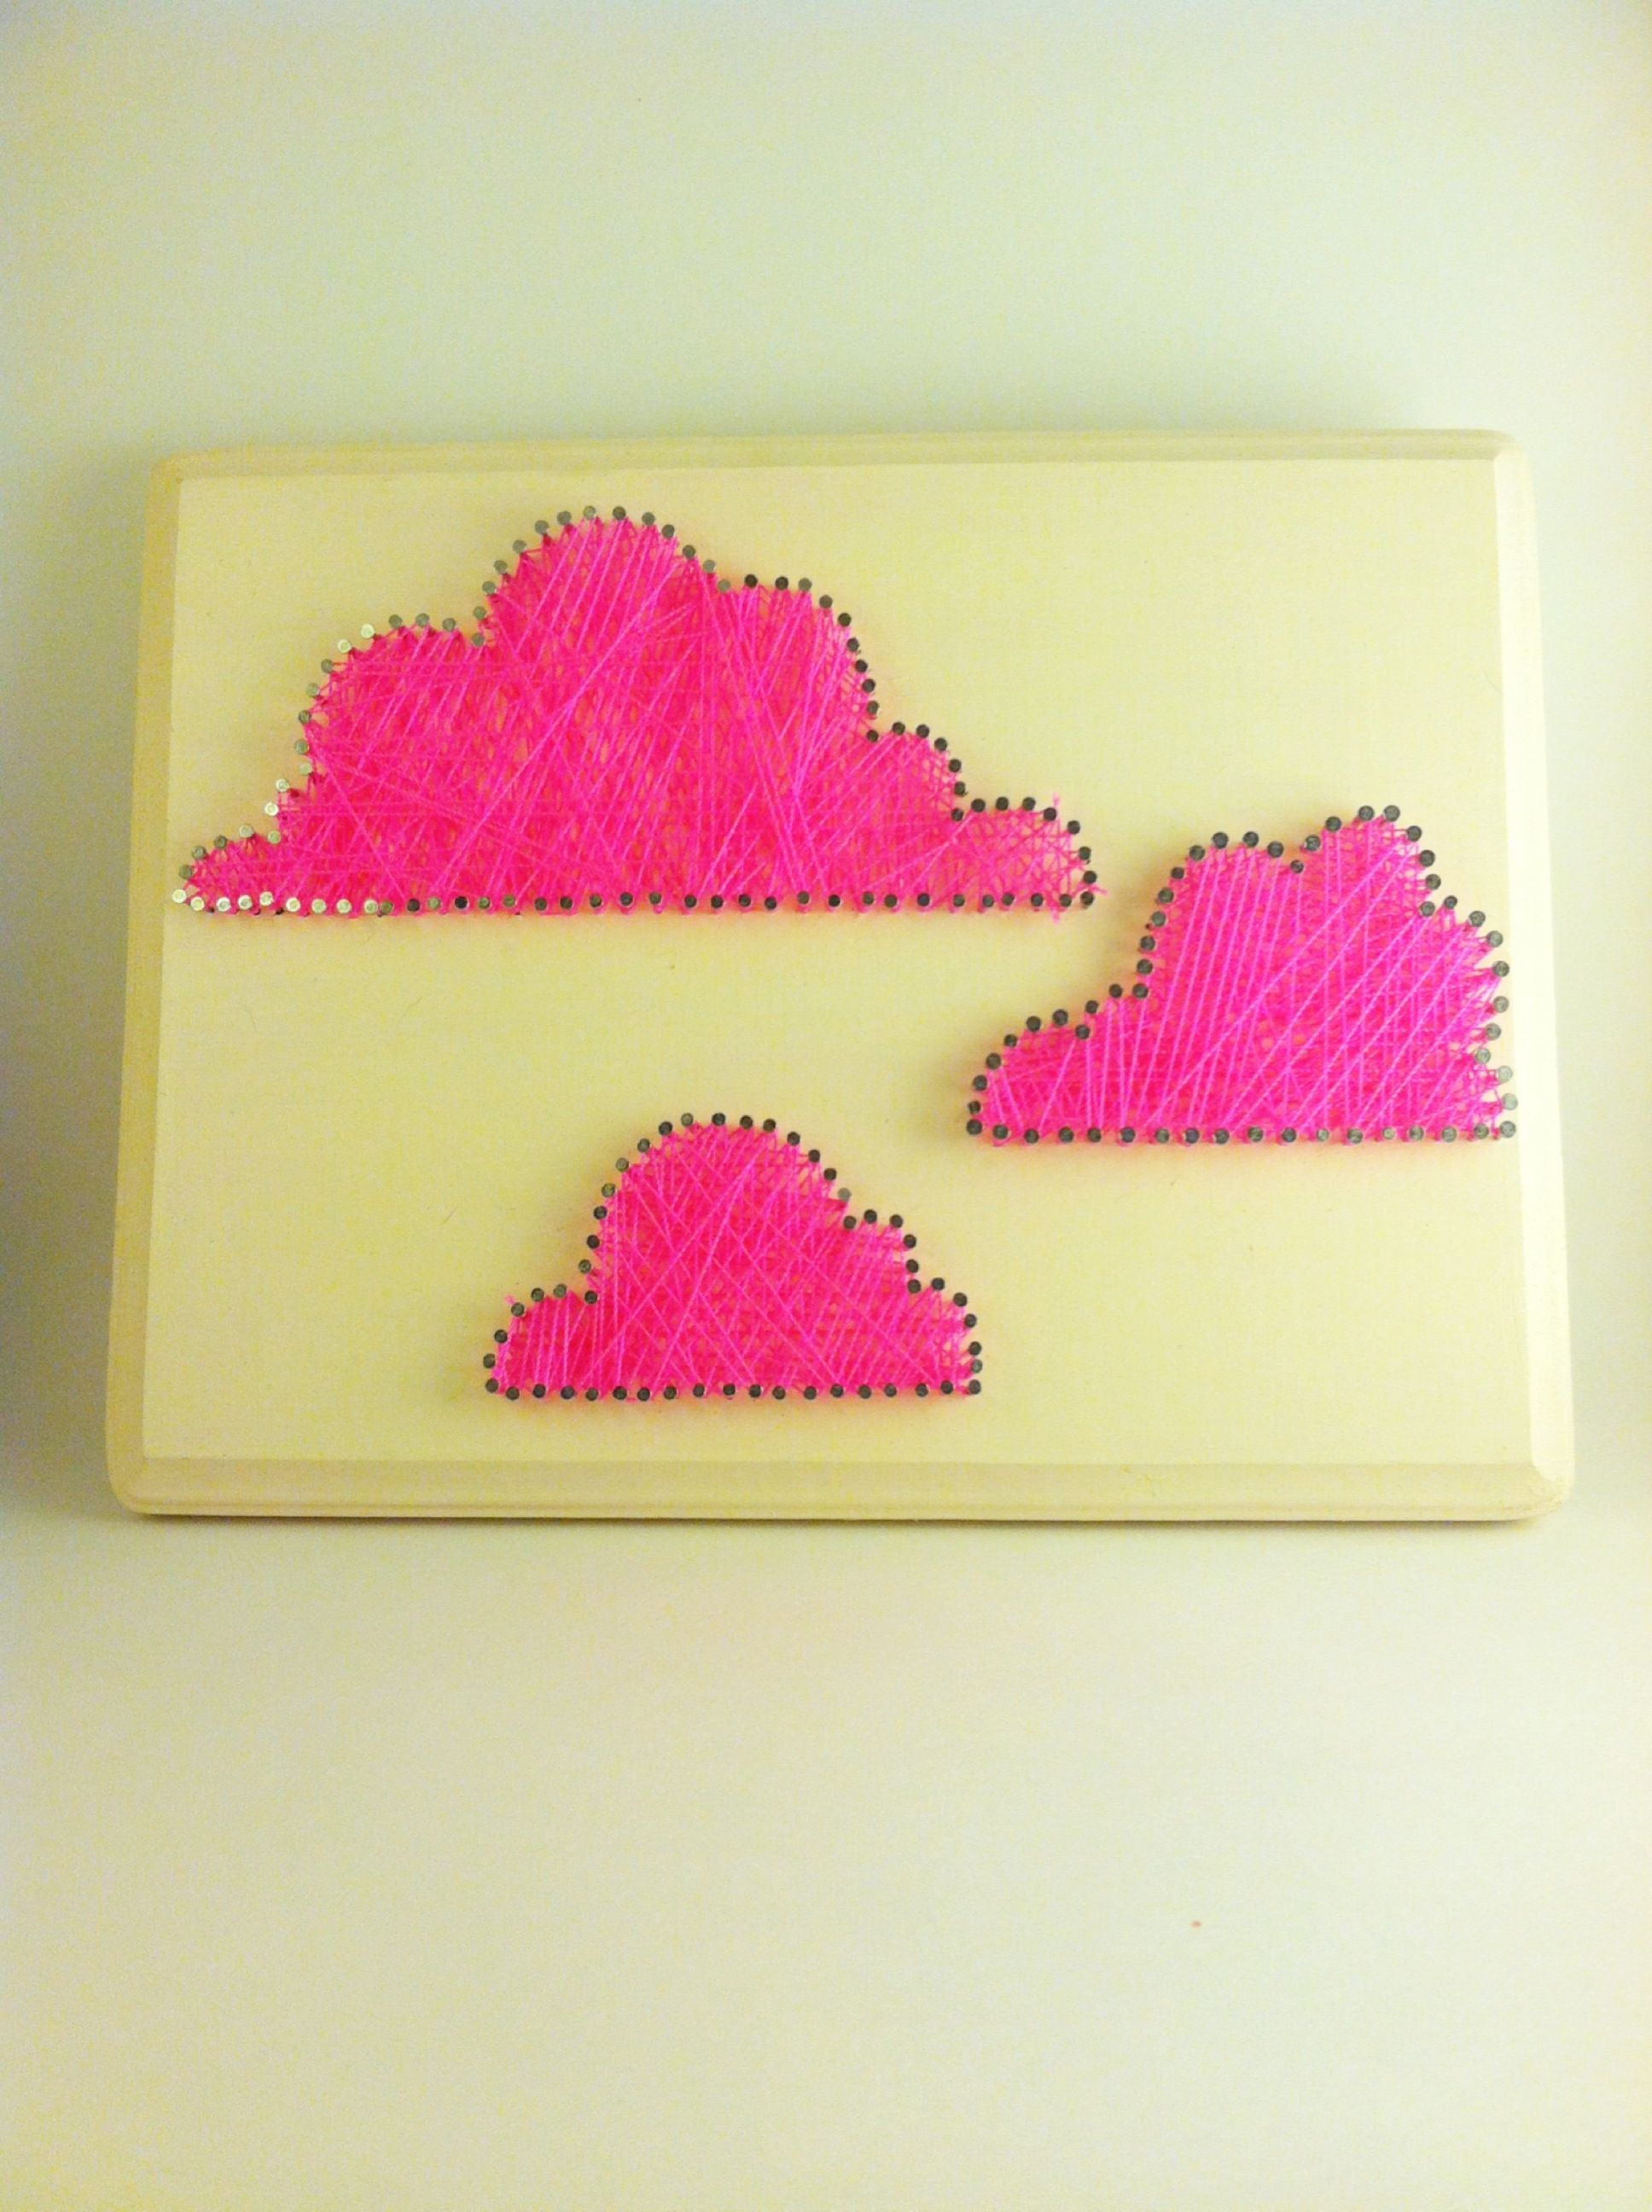 Neon Pink clouds string art   The Confetti Committee   Pinterest ...